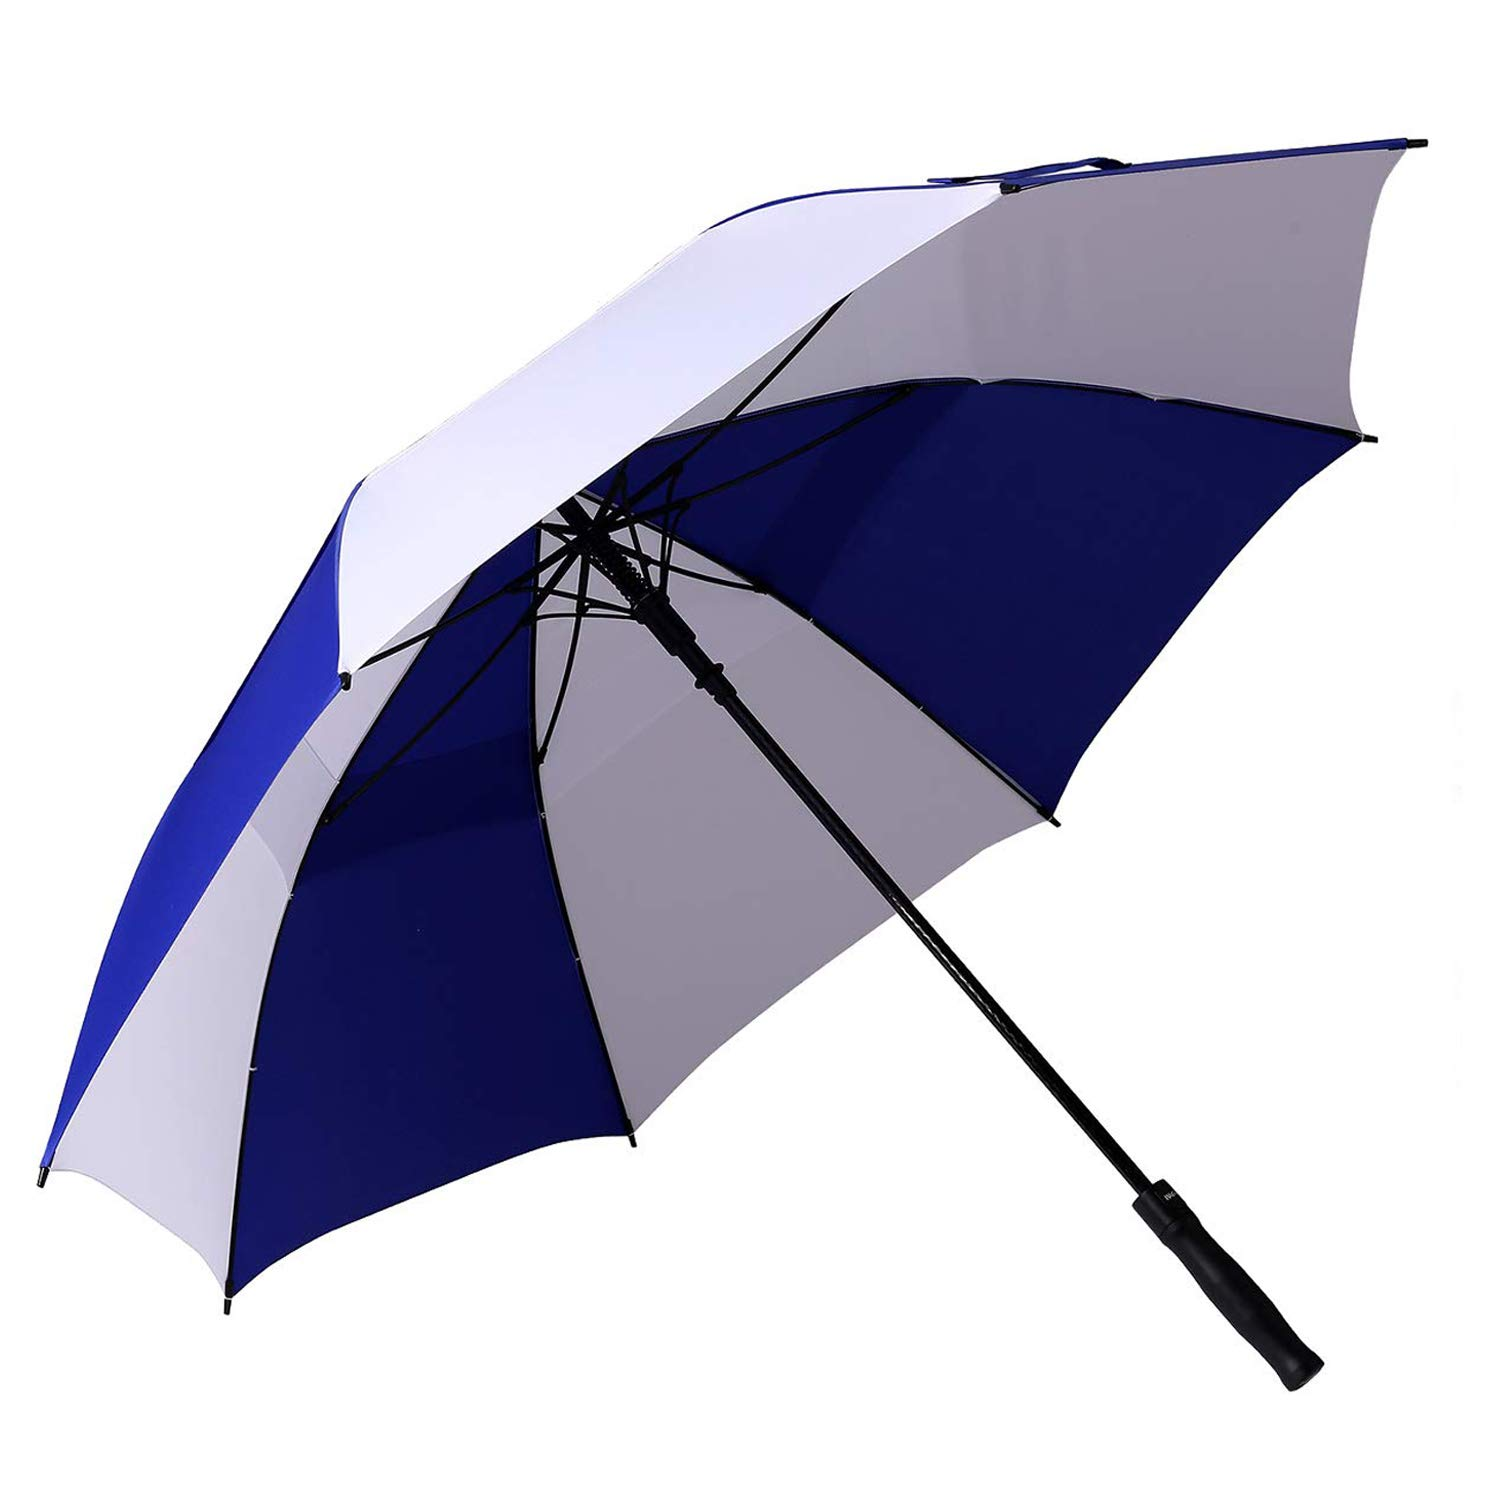 BAGAIL Golf Umbrella 68/62/58 Inch Large Oversize Double Canopy Vented Windproof Waterproof Automatic Open Stick Umbrellas for Men and Women (Blue White, 68 inch) by BAGAIL